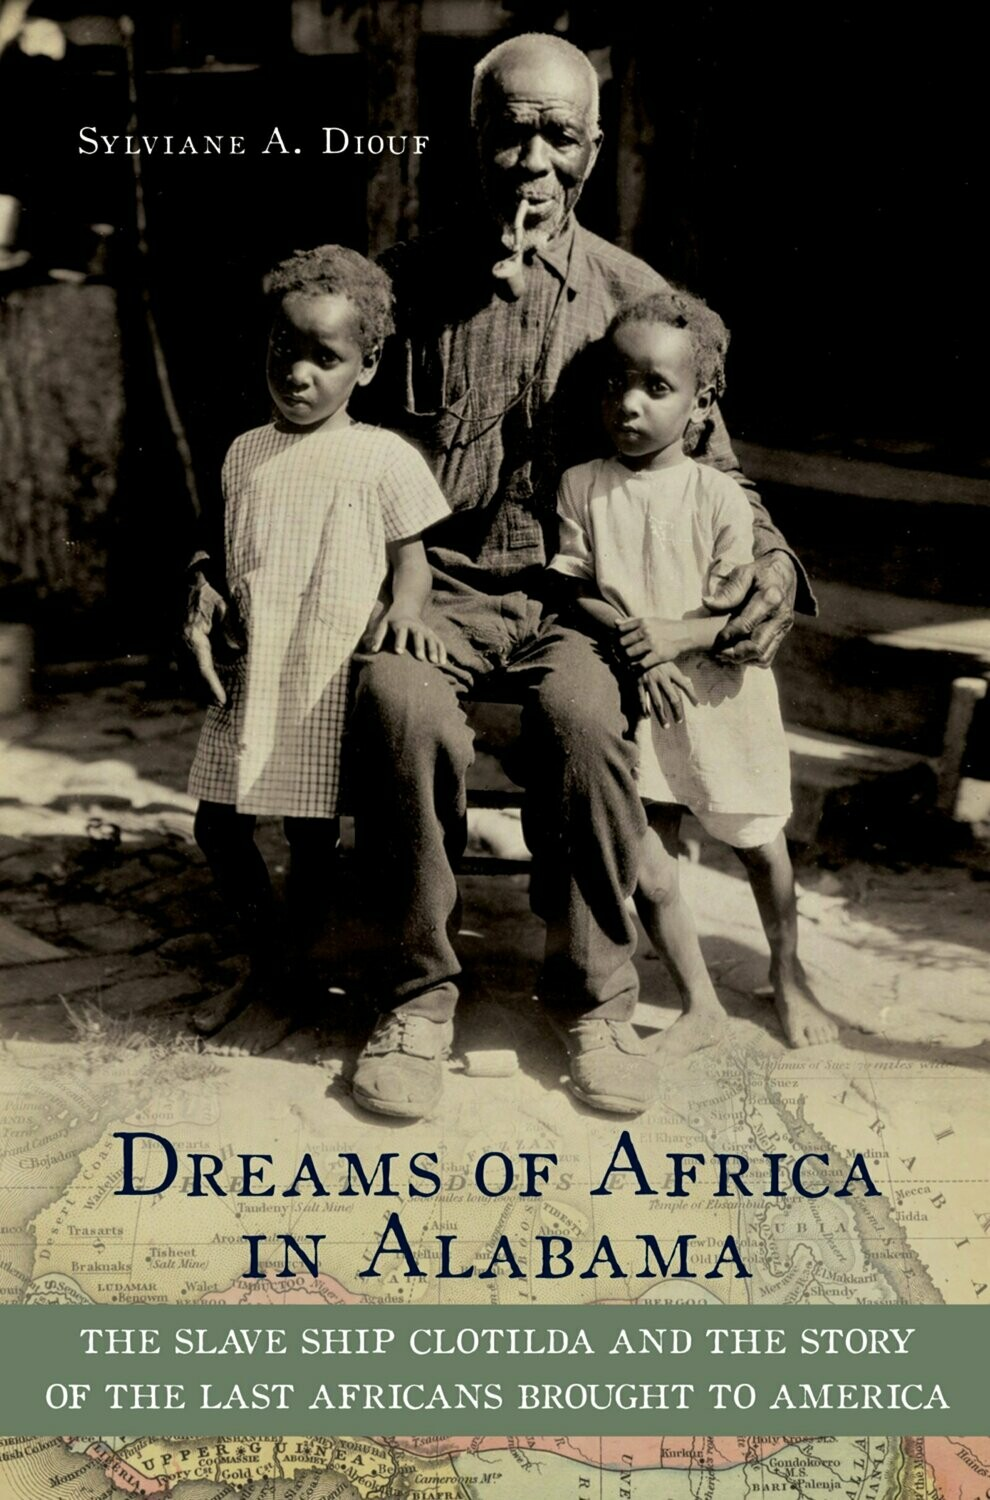 Dreams of Africa in Alabama: The Slave Ship Clotilda and the Story of the Last Africans Brought to America by Sylviane A. Diouf